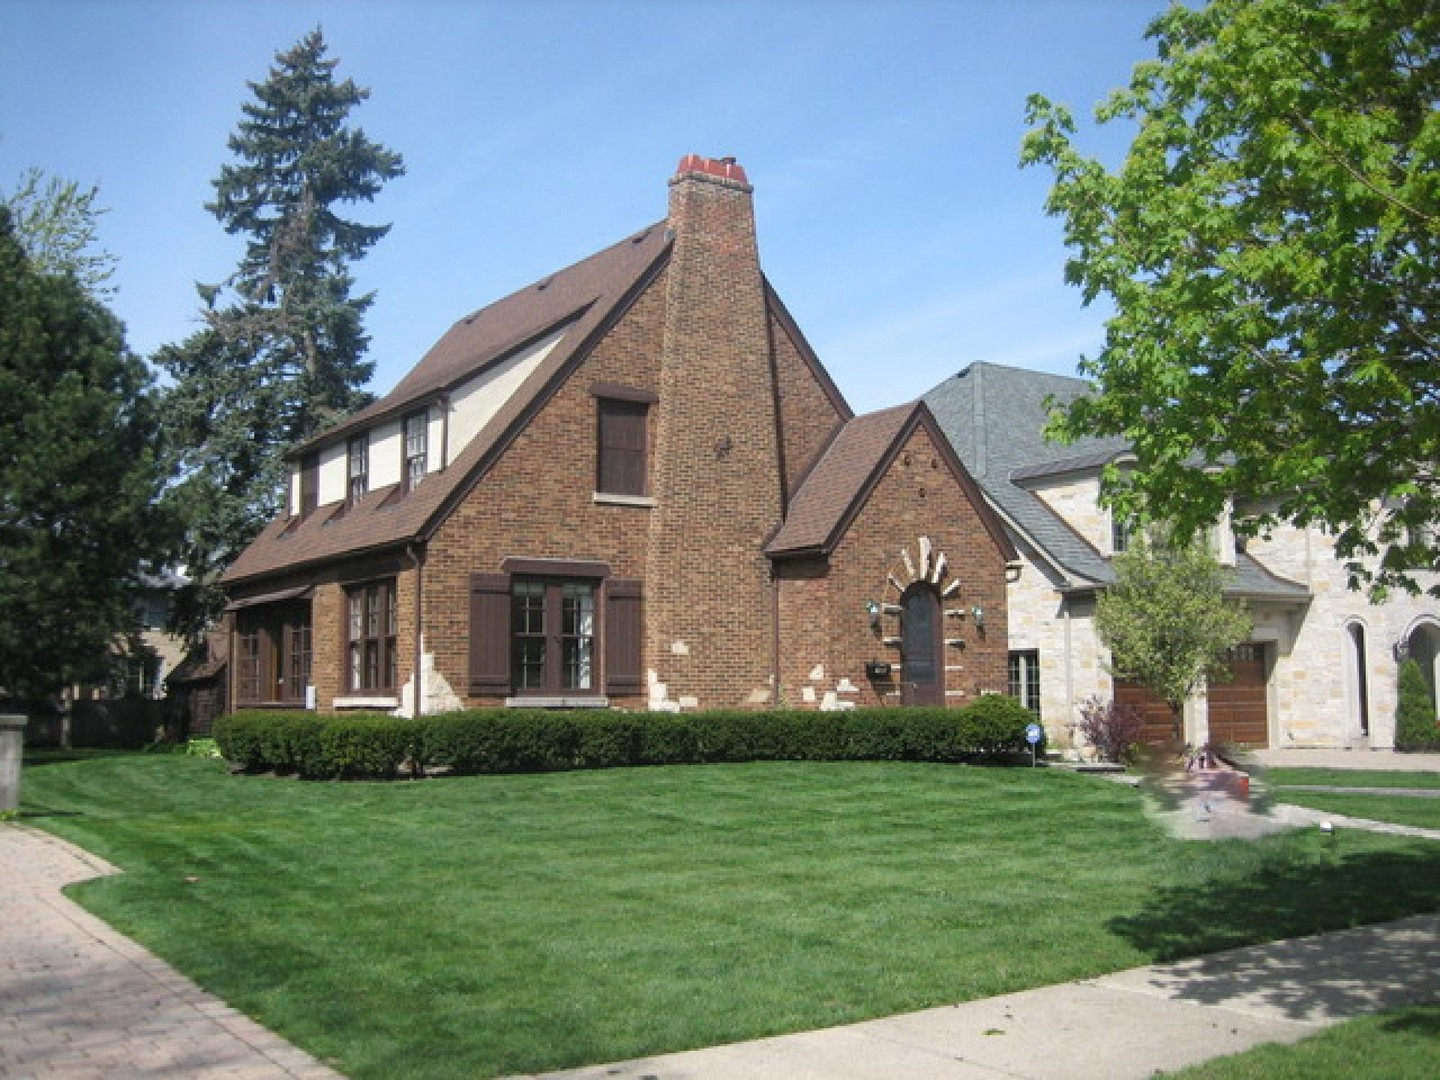 728 North Merrill Street, one of homes for sale in Park Ridge